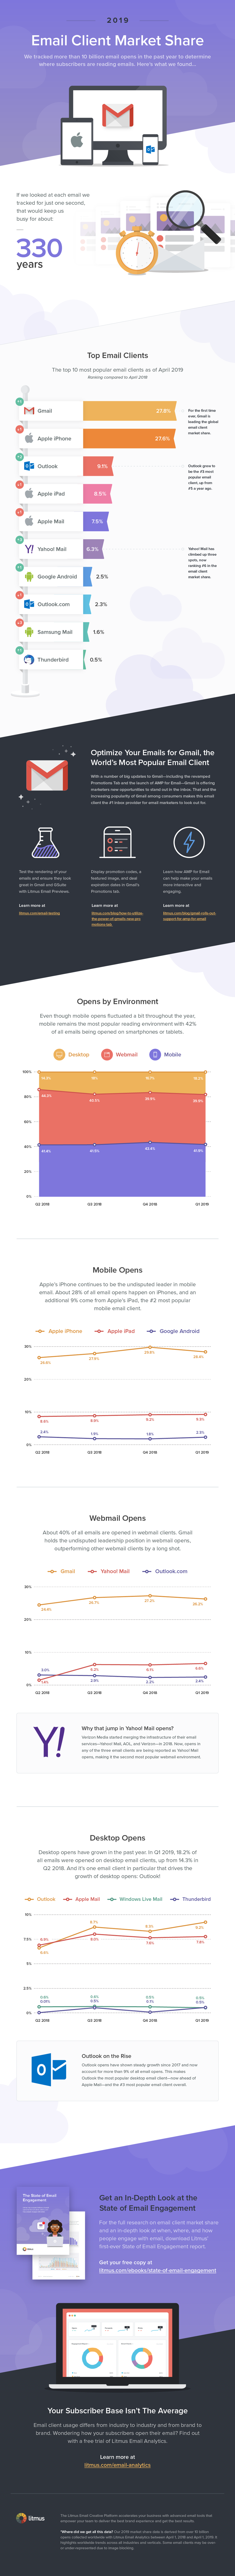 2019 email client market share